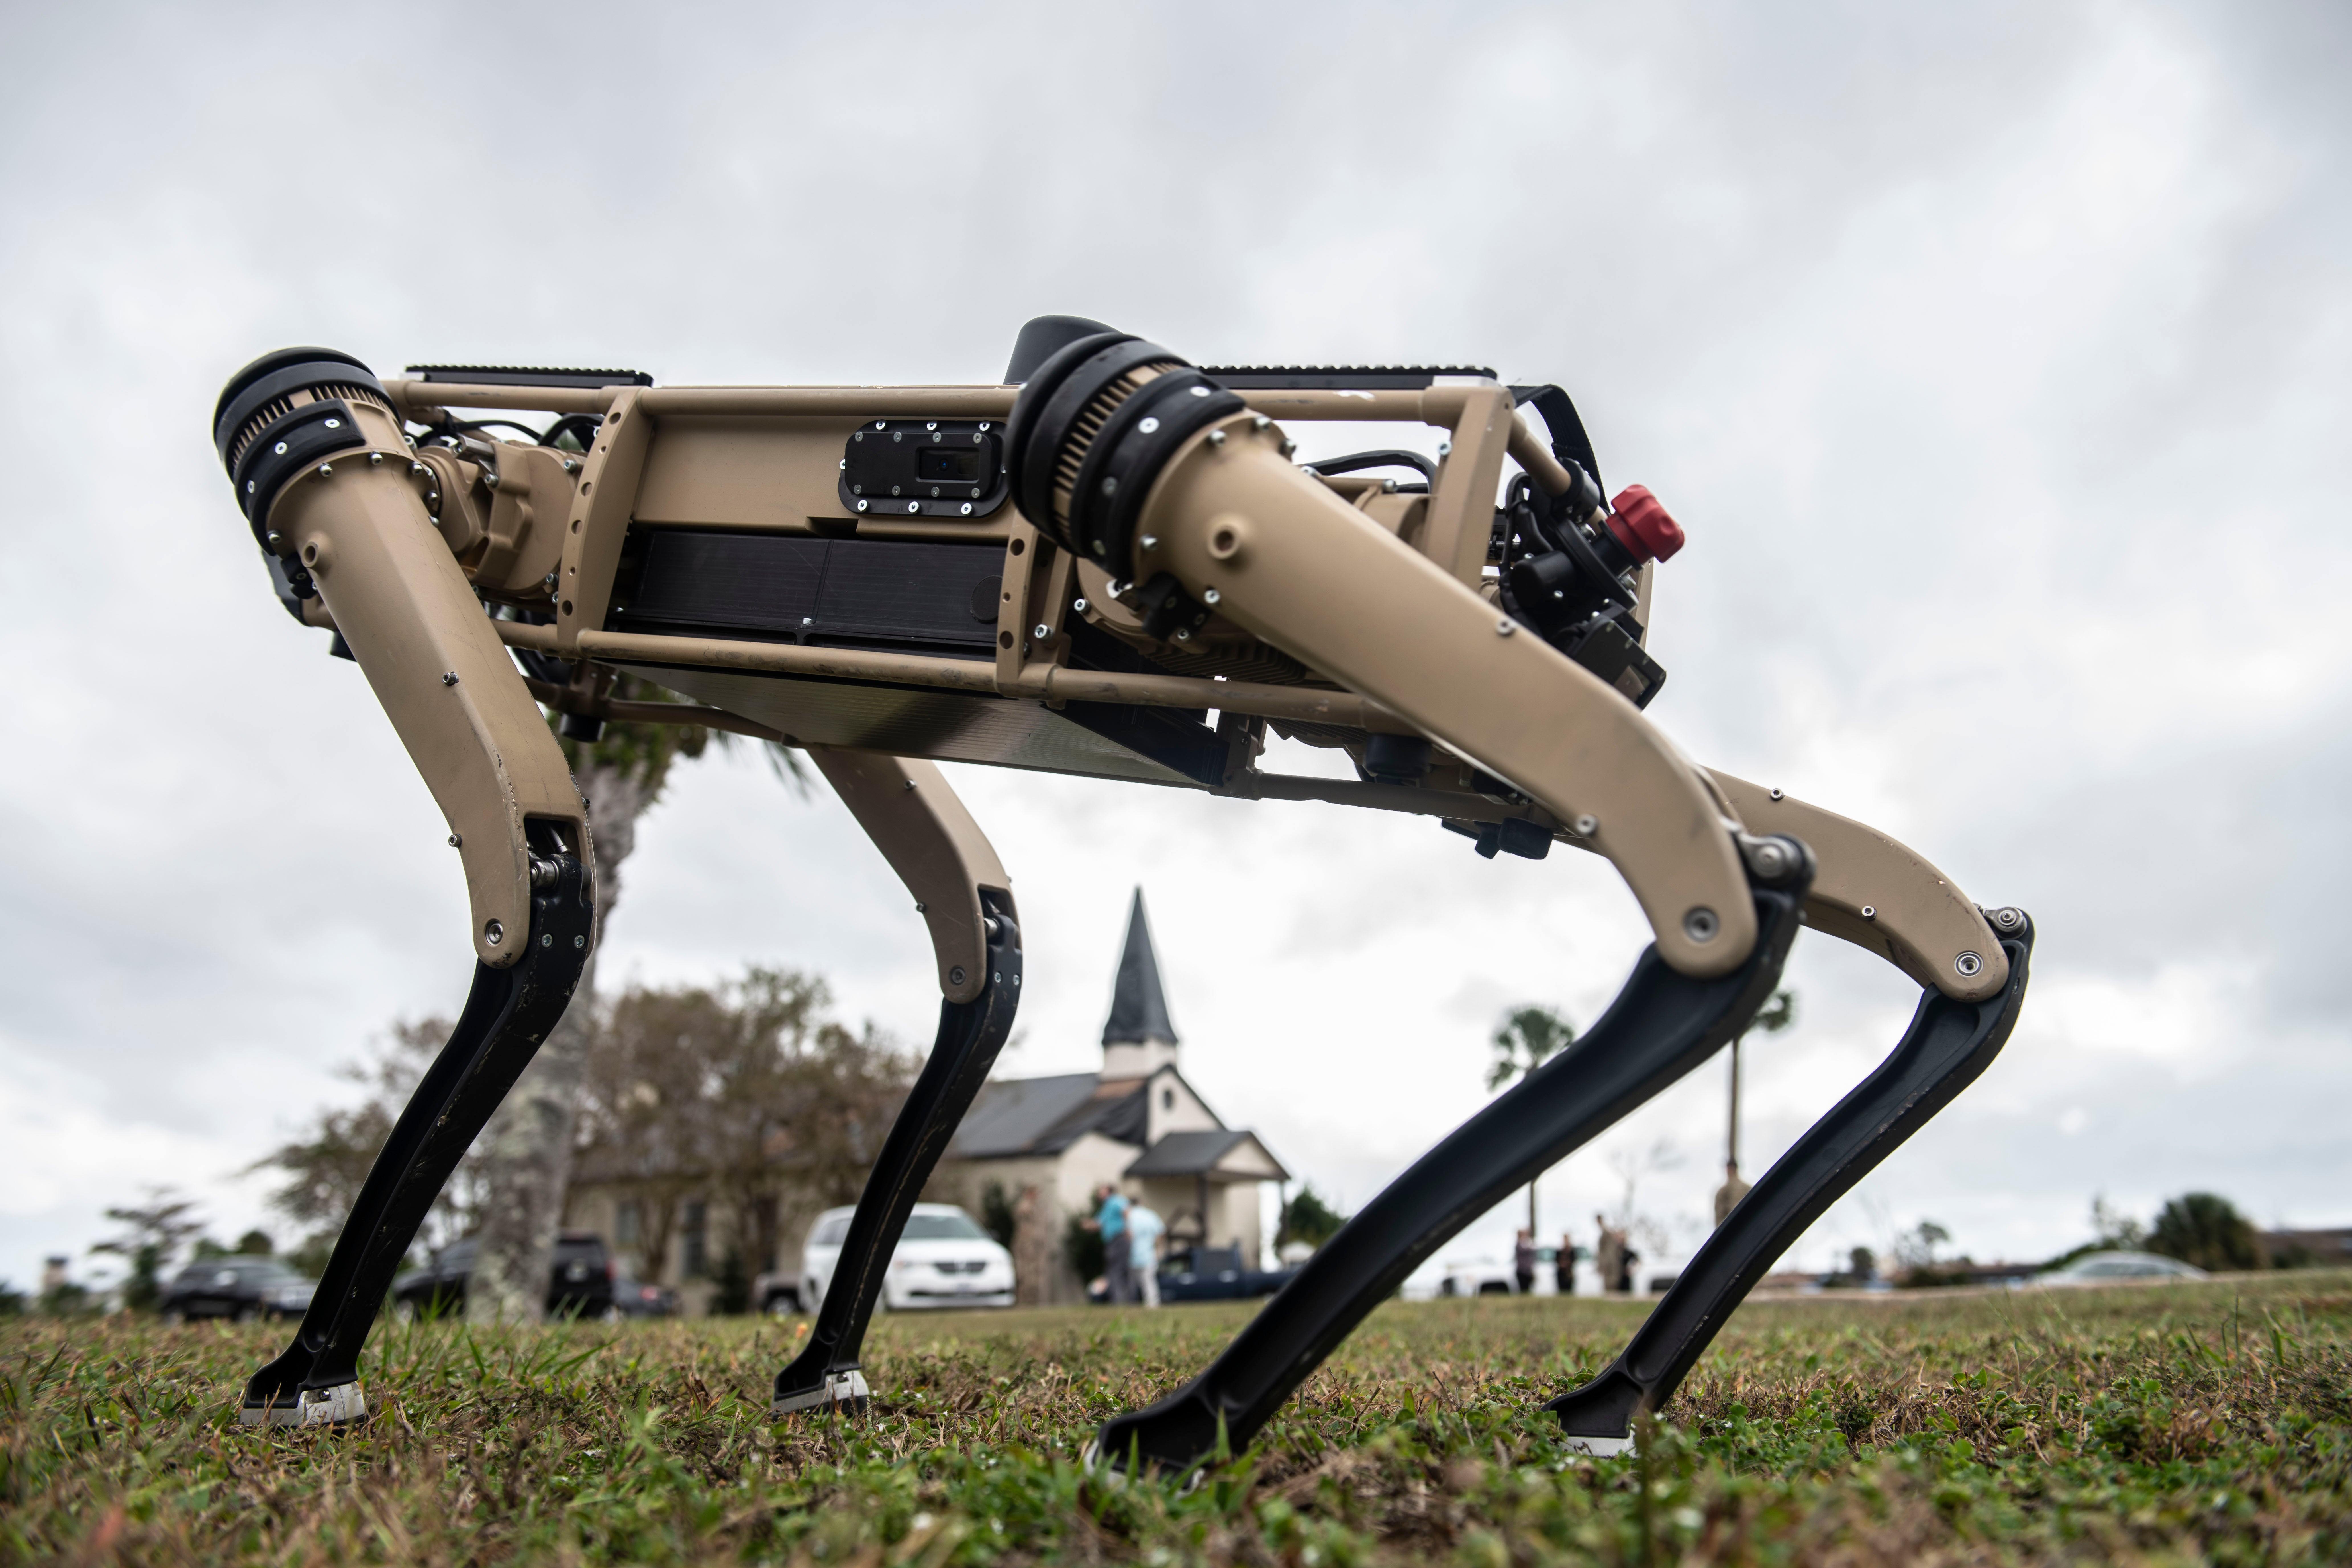 Robot dogs are coming to an Air Force base near you